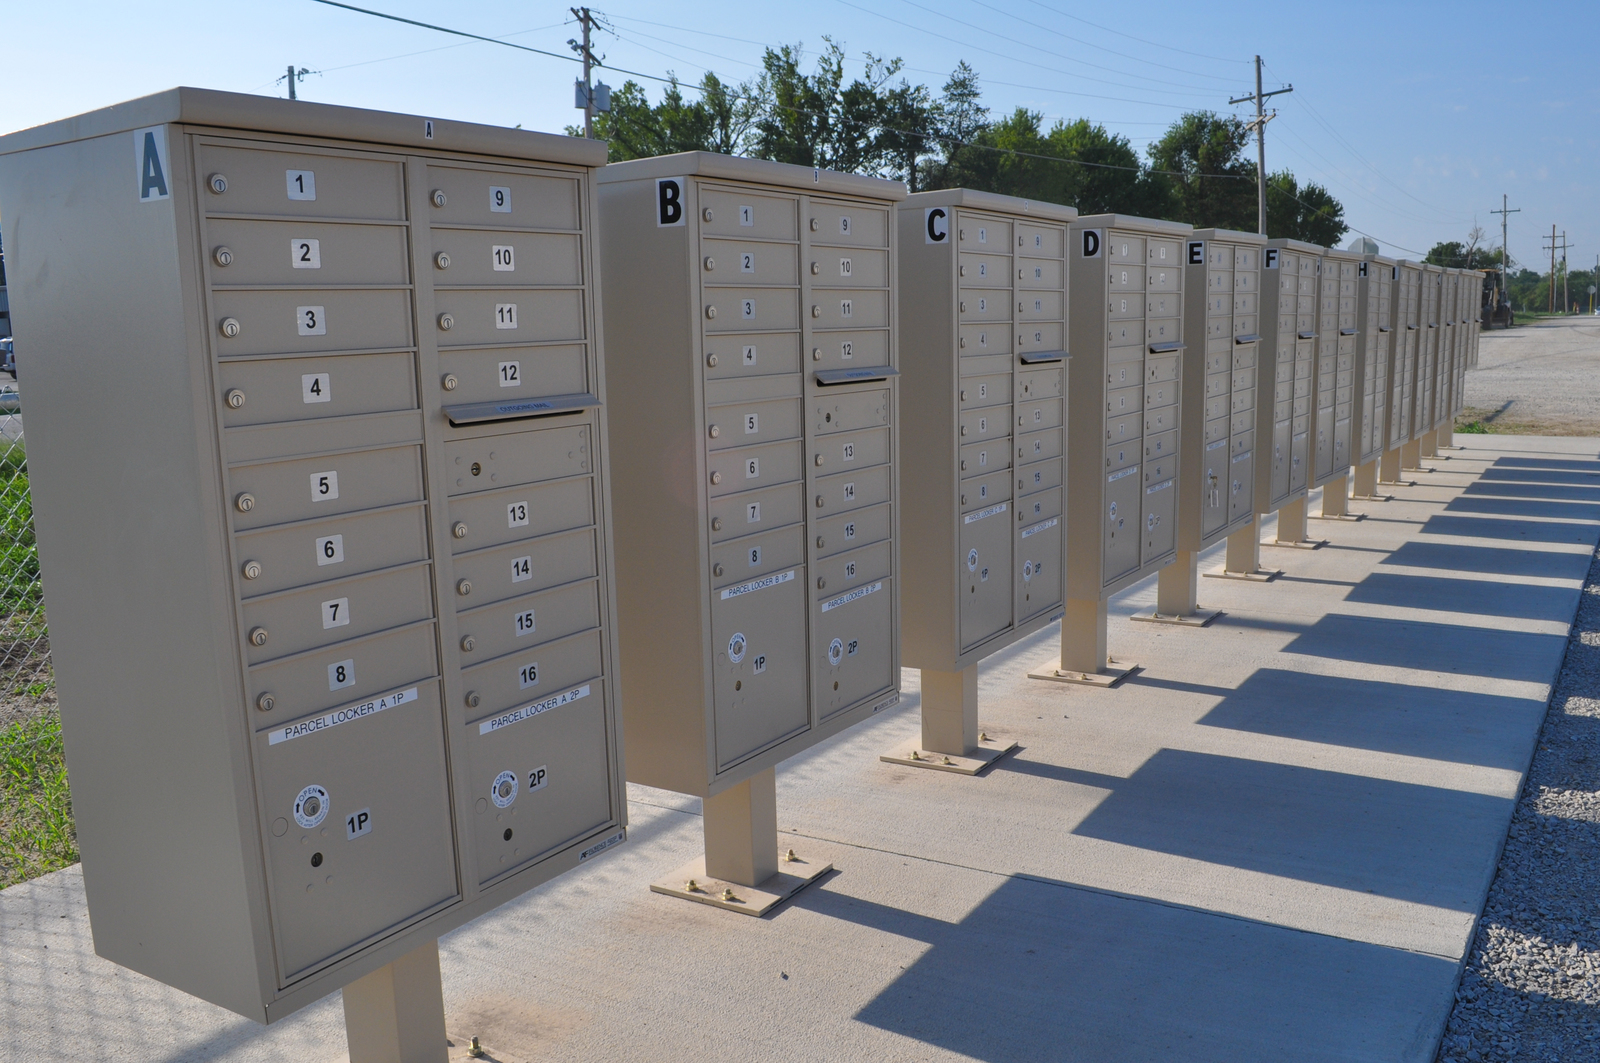 Tornado - Joplin, Mo  , August 24, 2011 -- US Post Office mailboxes